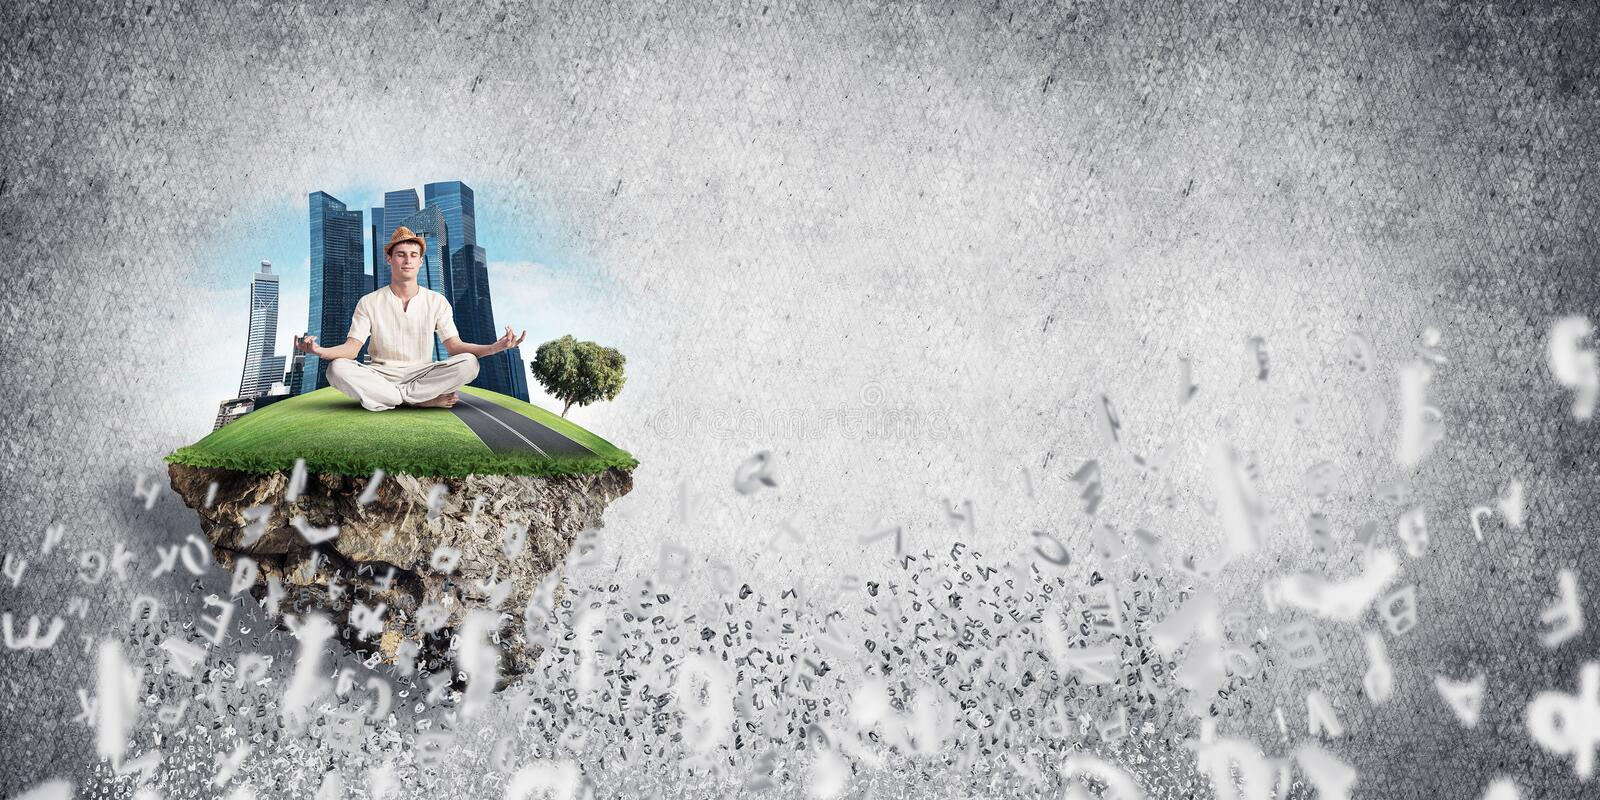 Young man keeping mind conscious. Man in white clothing keeping eyes closed and looking concentrated while meditating on island in the air among flying letters vector illustration